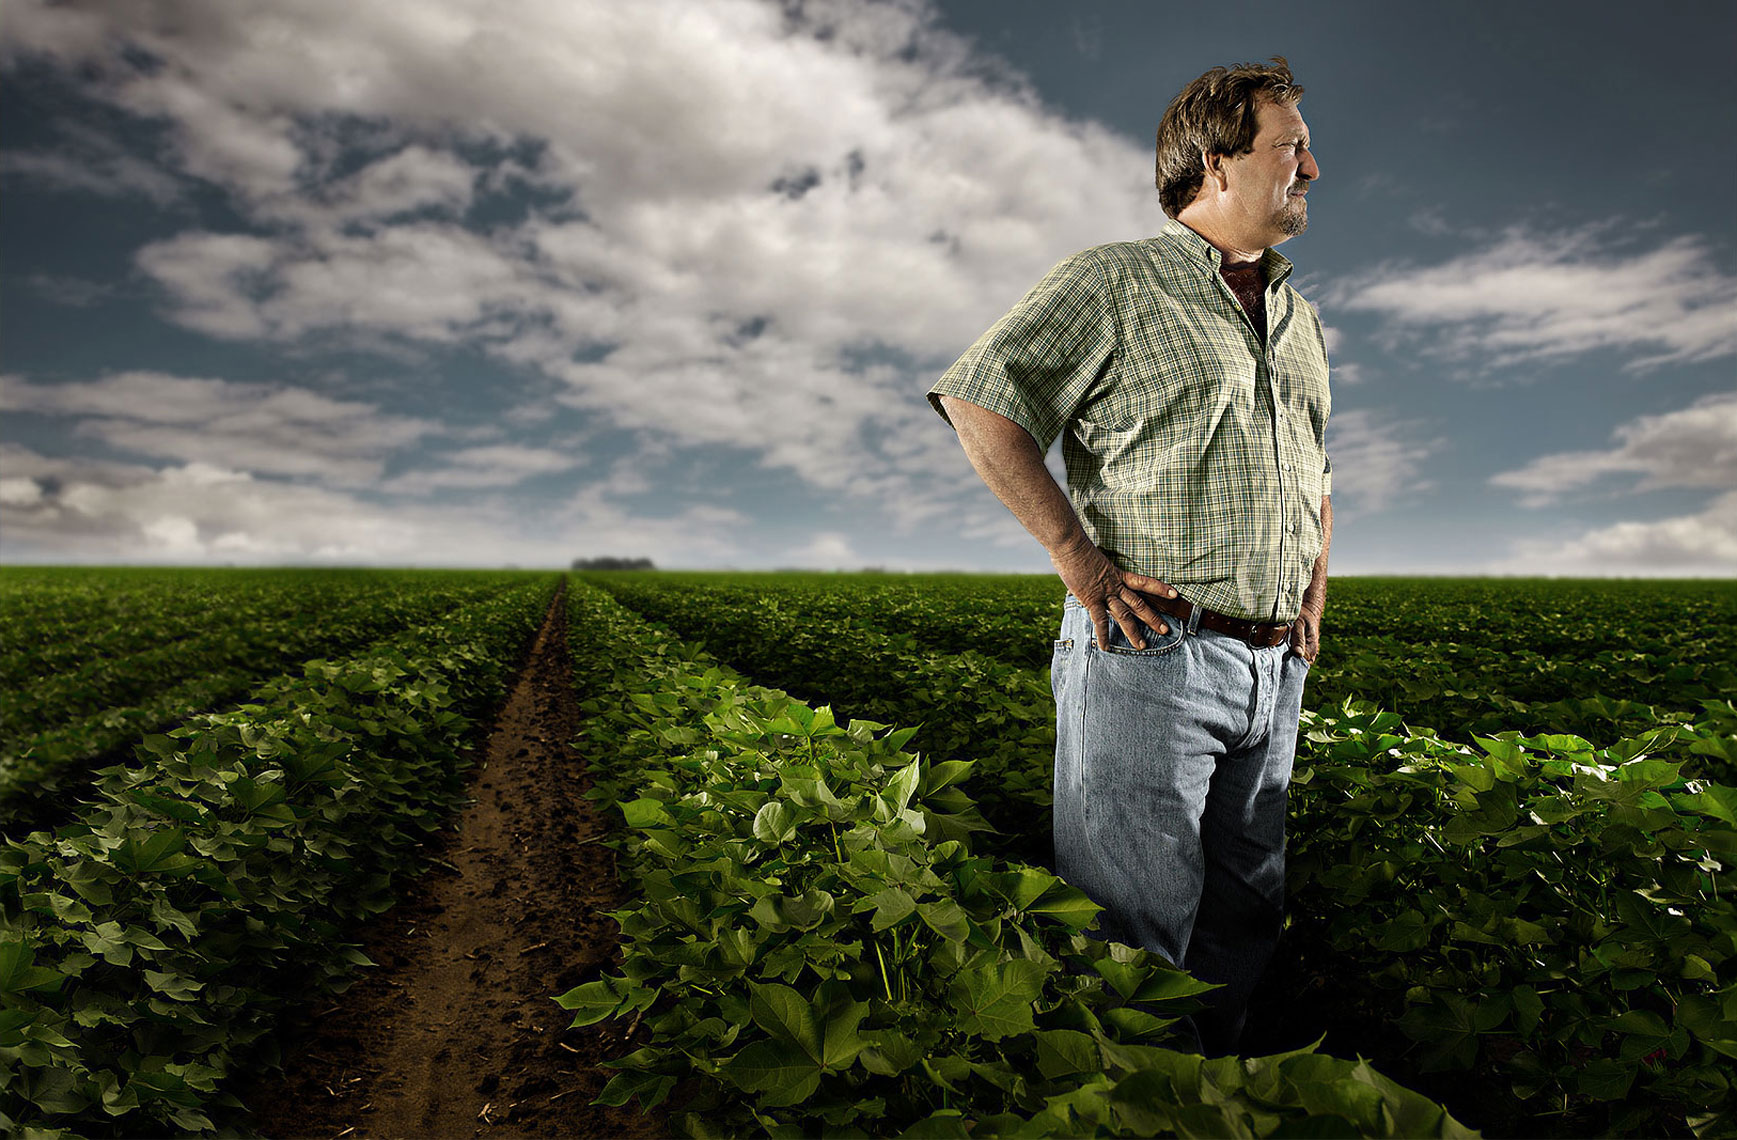 Cotton grower on his farm in Oklahoma